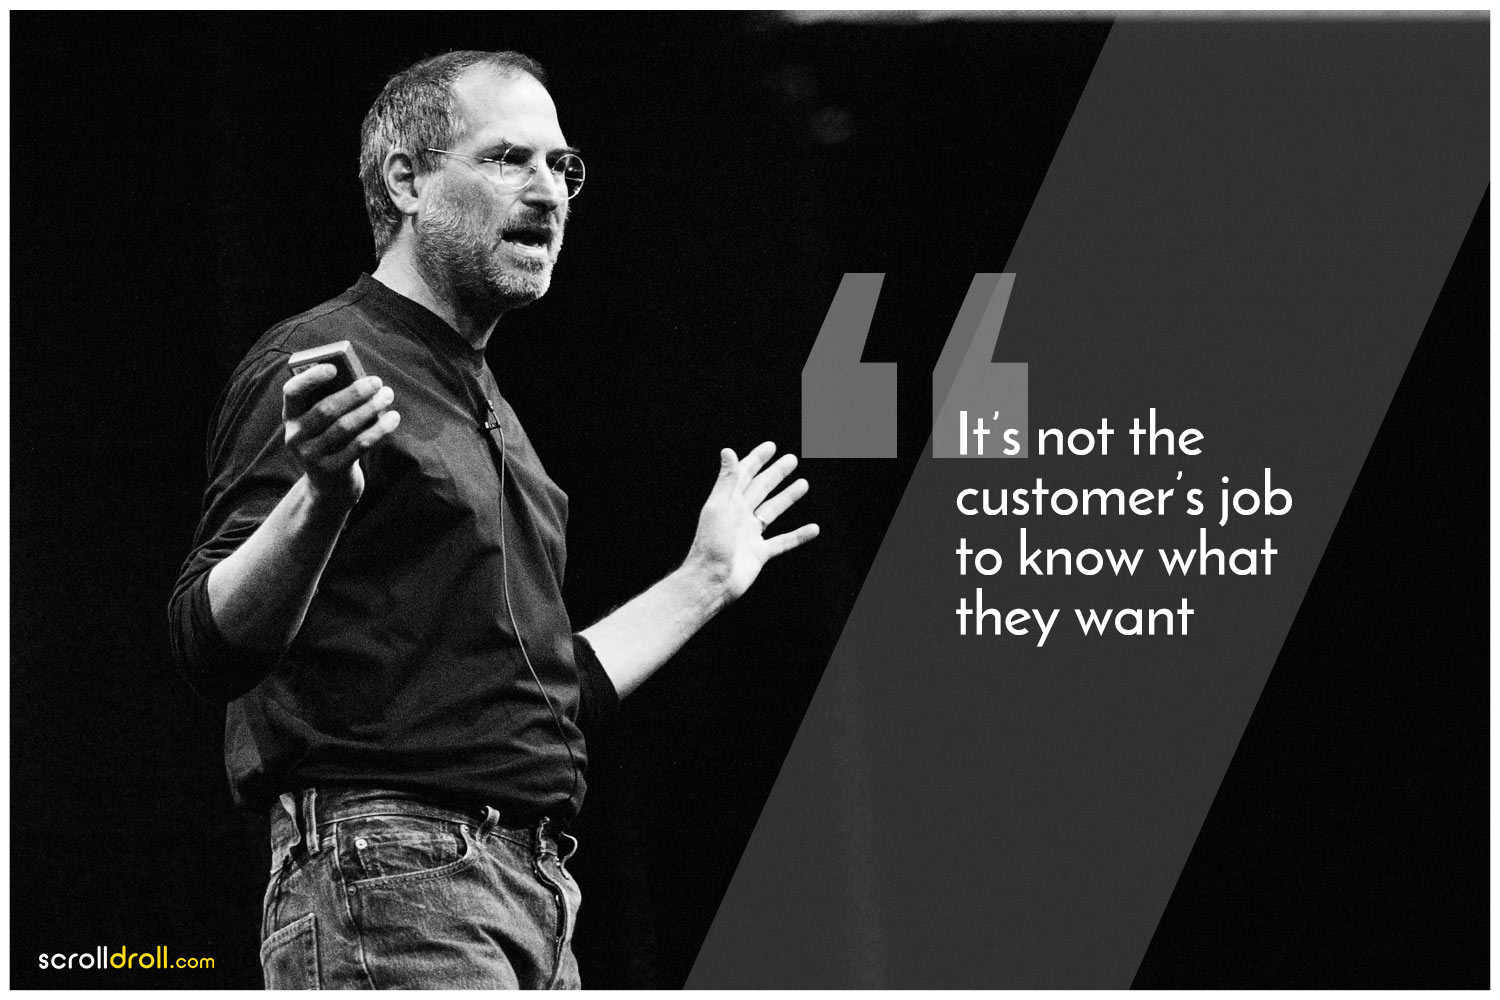 Steve Jobs Quotes That Will Make You Ready To TAKE ON THE